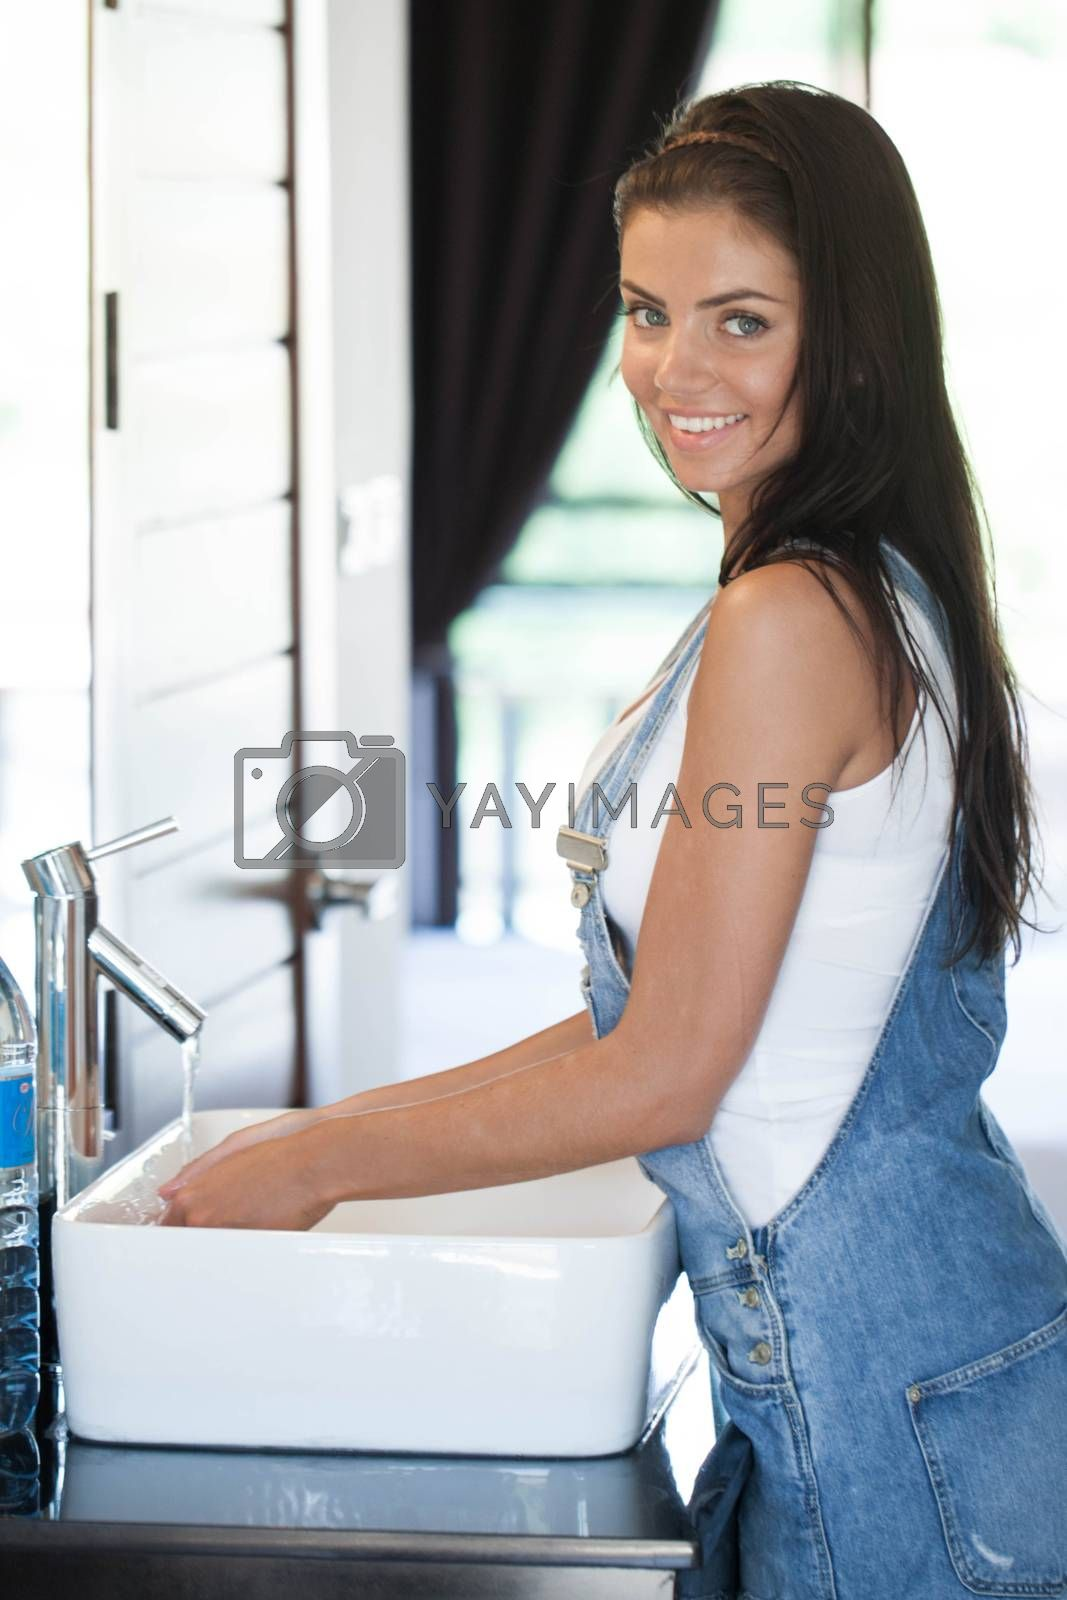 Side view of beautiful young woman in bathroom washing hands